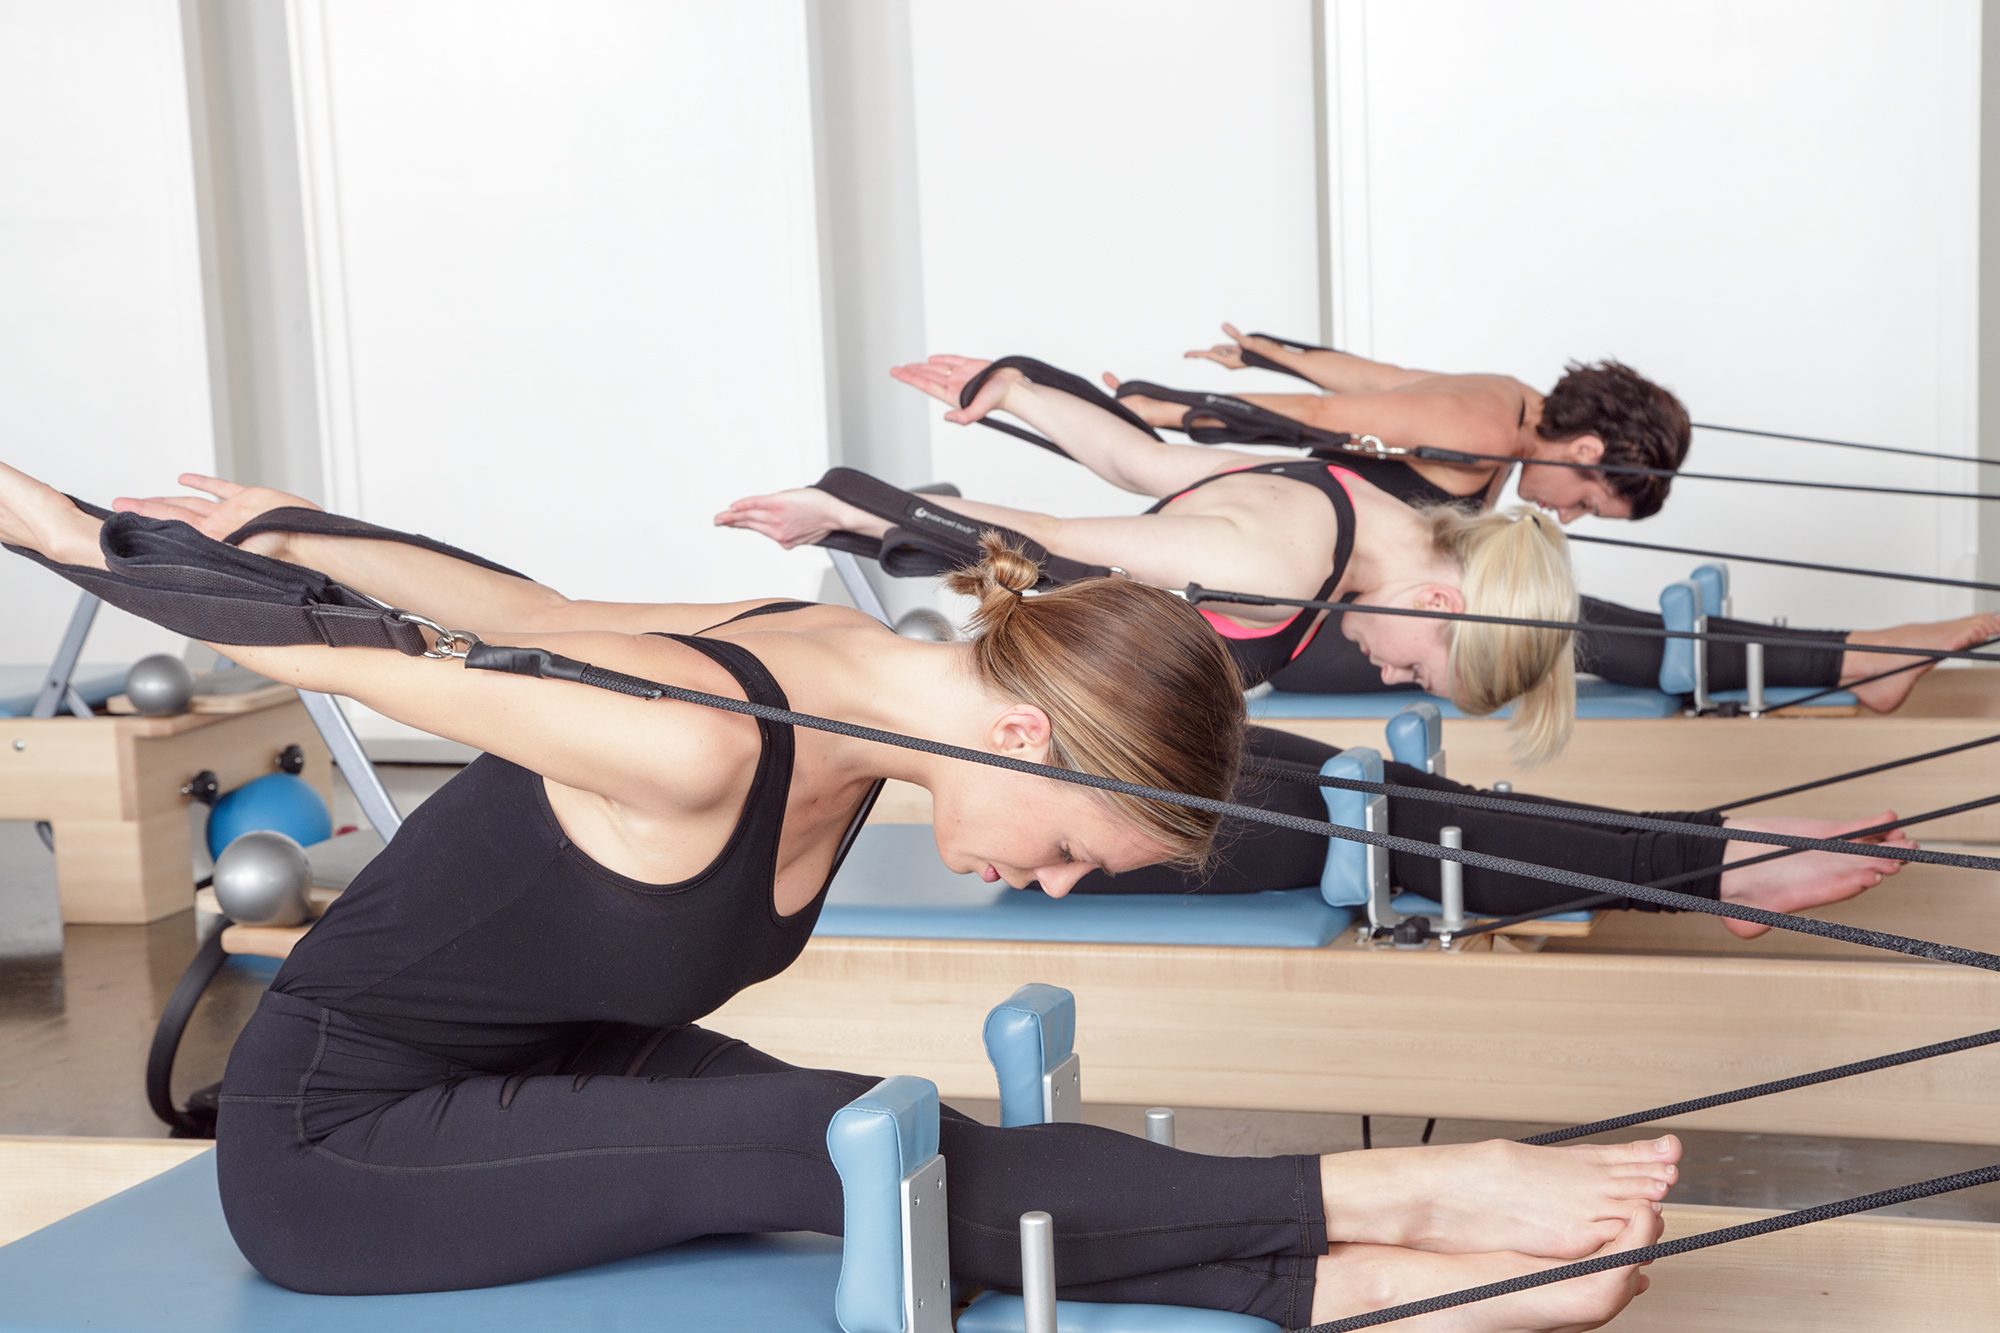 nashville-pilates-belle-meade-workout-reformer-pilates-excercise-rehab-physical-therapy-healthy-atheletic-wear-fitness-mat-pilates-swell-studio27.jpg